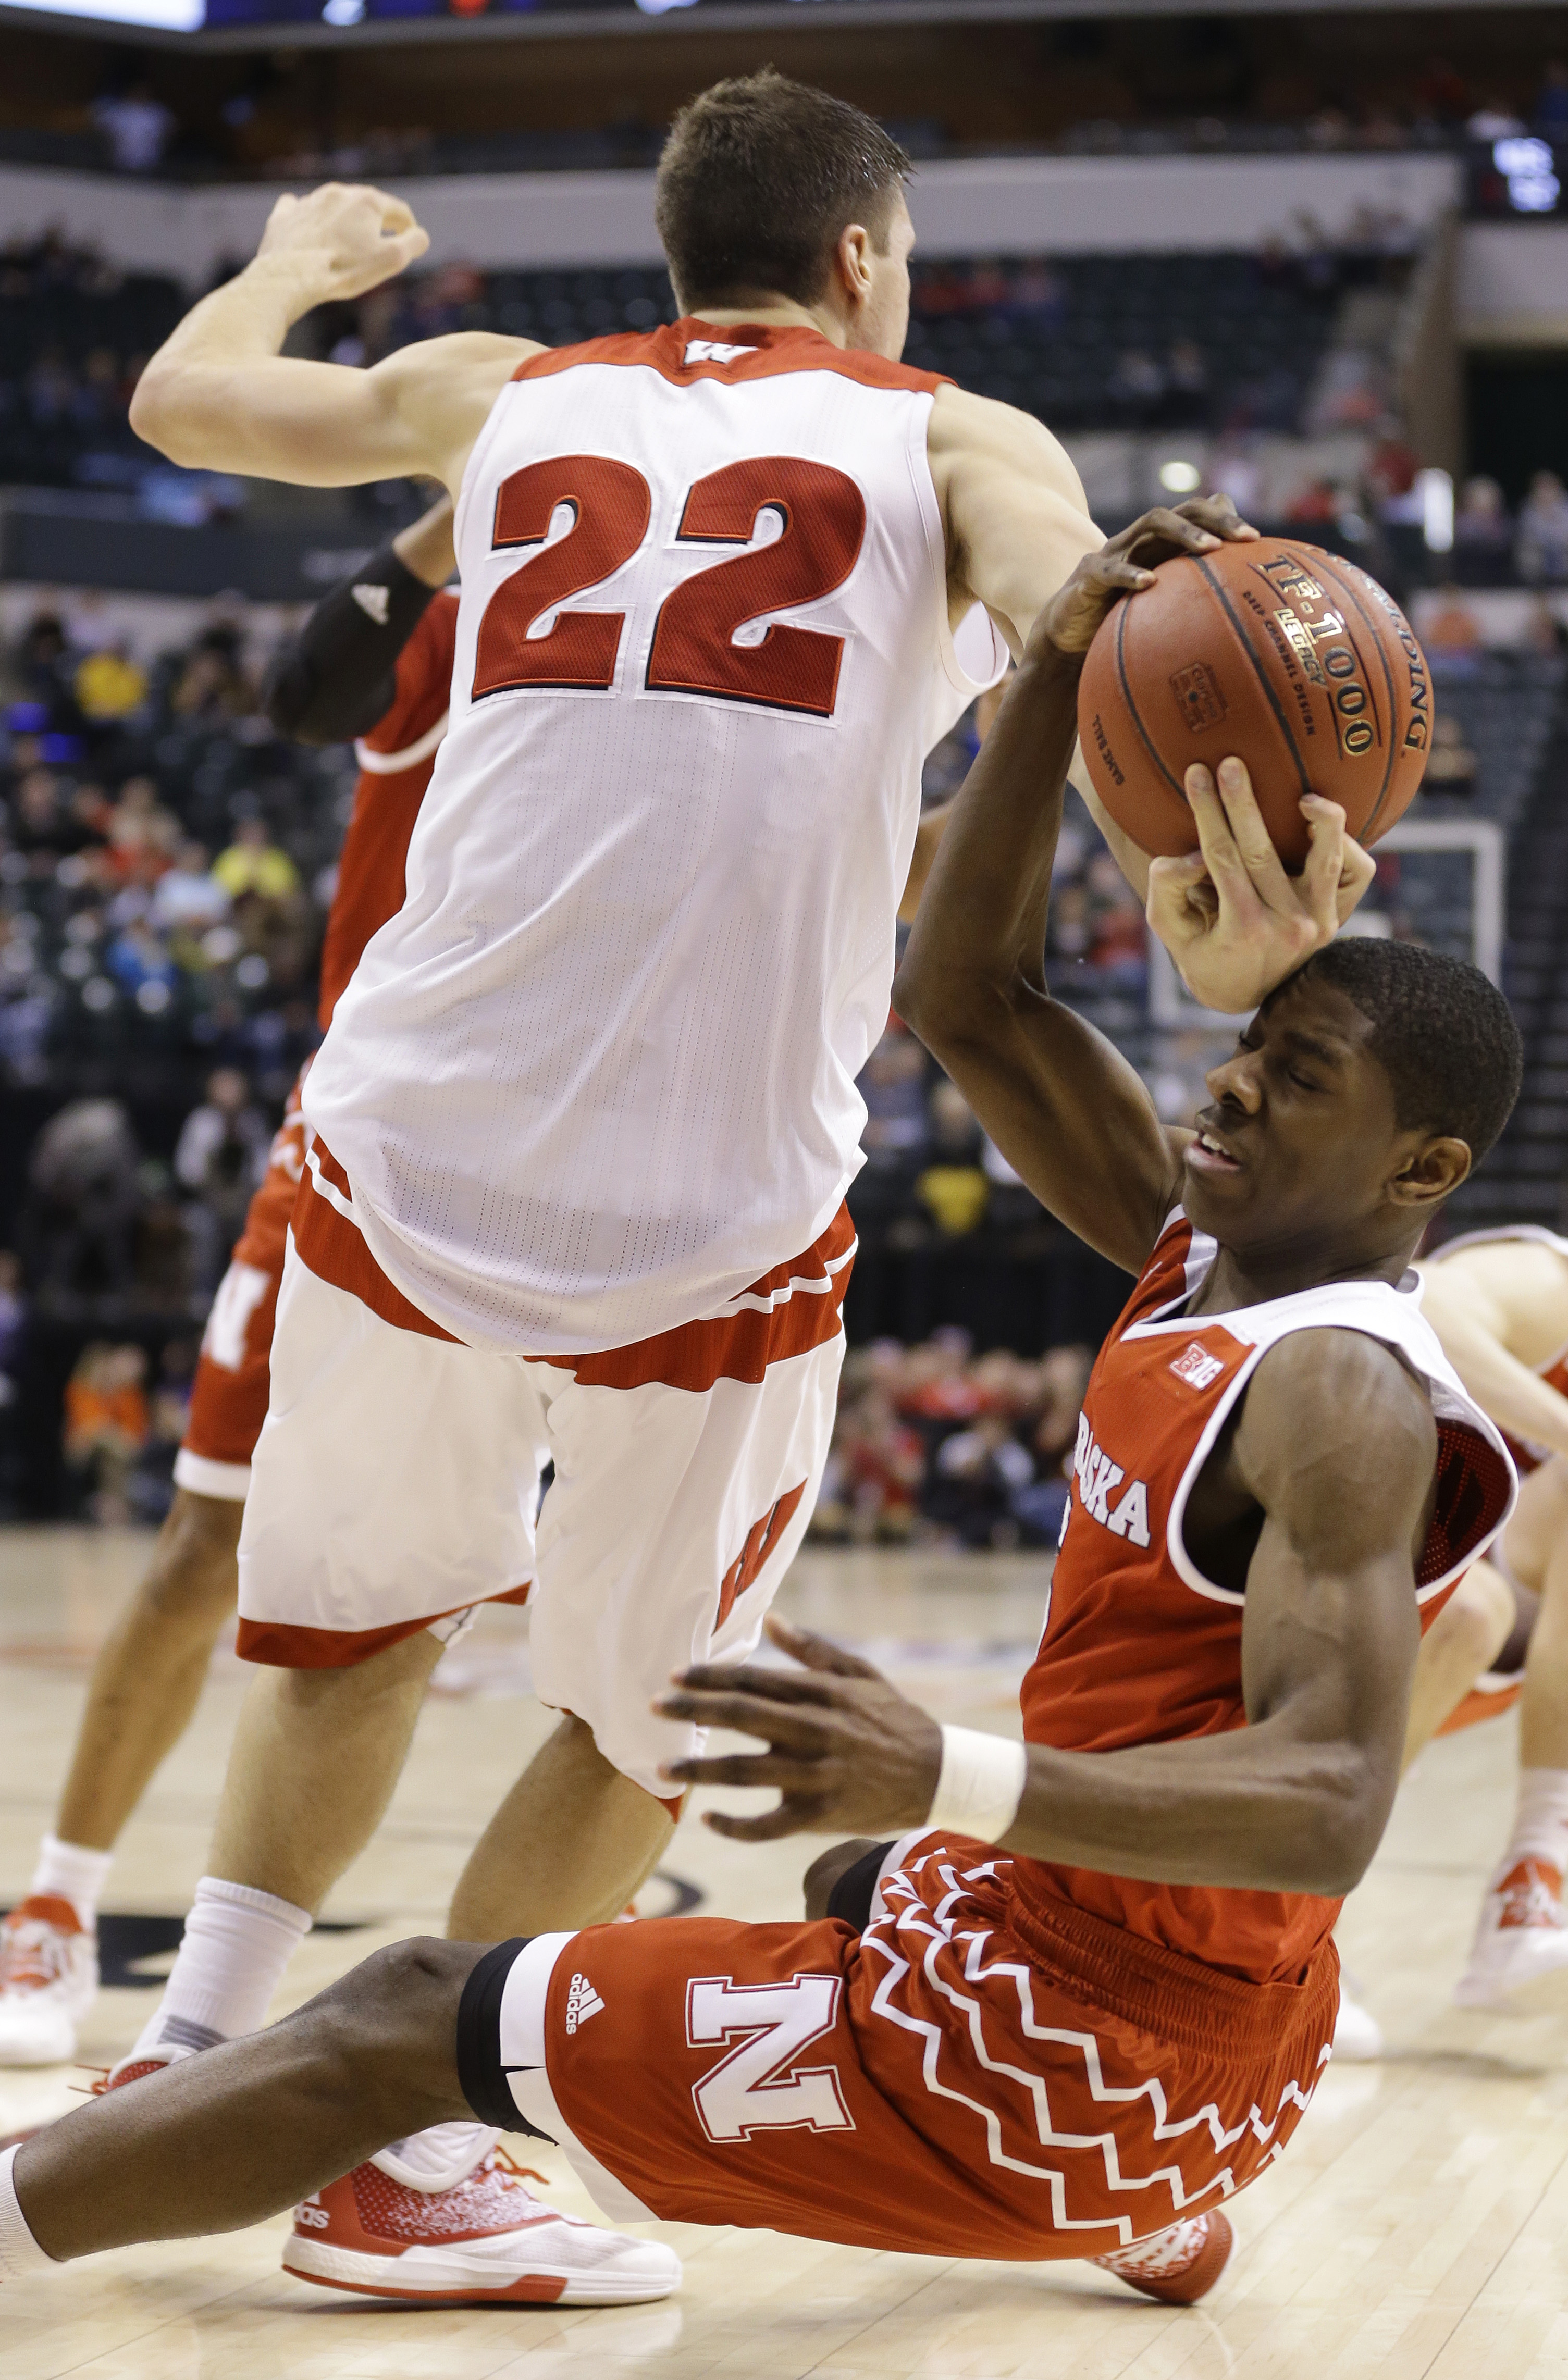 Wisconsin's Ethan Happ (22) and Nebraska's Glynn Watson Jr. (5) battle for the possession of the ball in the second half of an NCAA college basketball game at the Big Ten Conference tournament, Thursday, March 10, 2016, in Indianapolis. Nebraska won 70-58